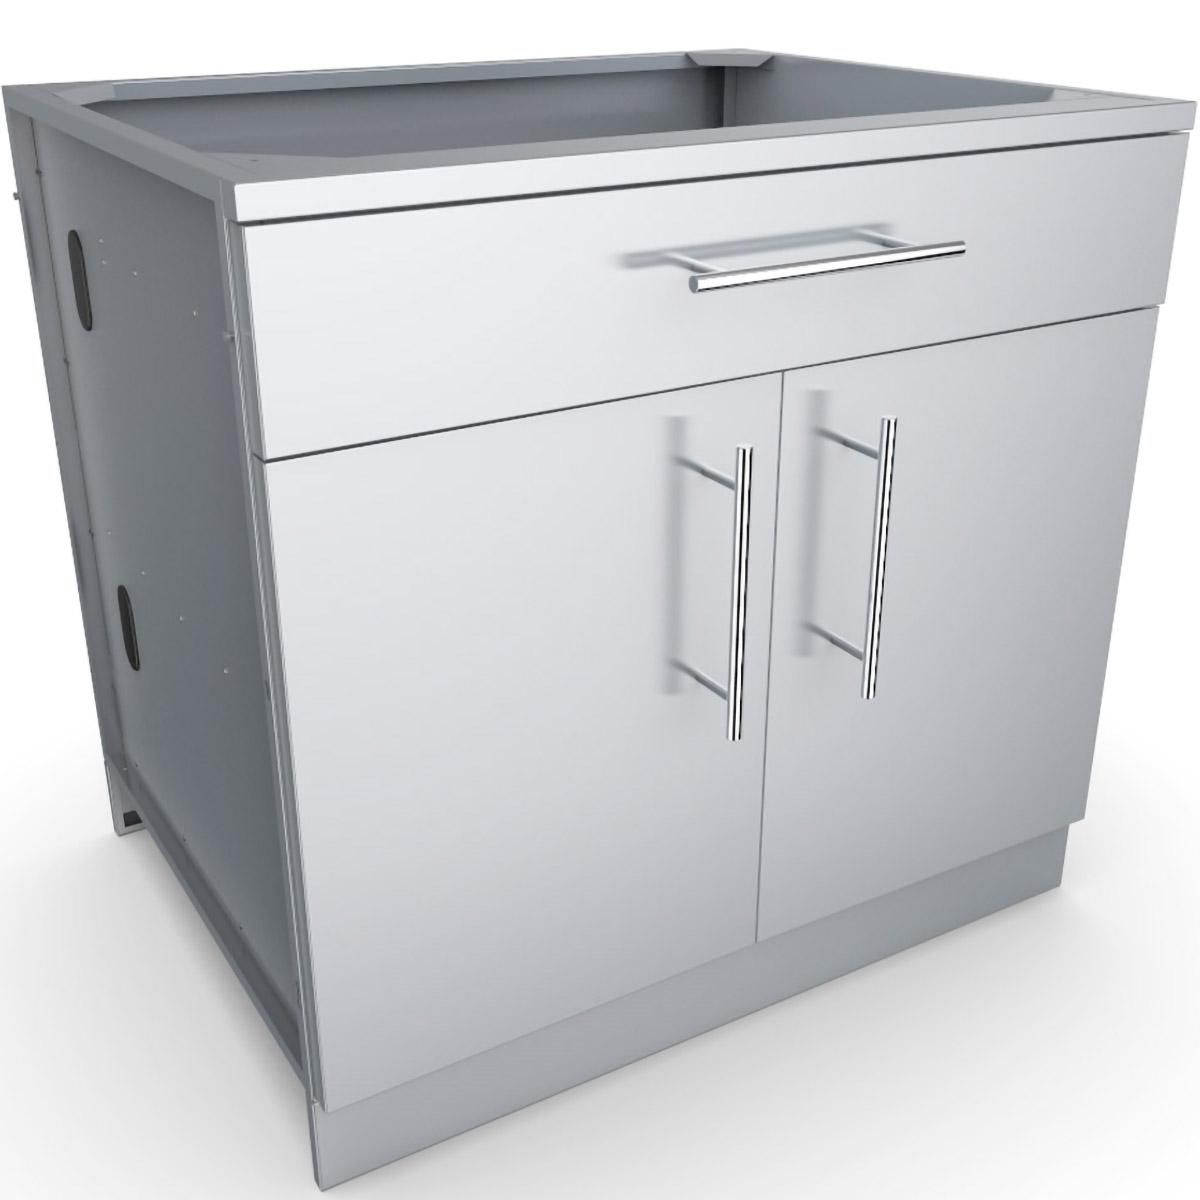 Sunstone 36 Inch Outdoor Kitchen Double Door And Drawer Island Cabinet Sbc36cdd Bbqguys Outdoor Kitchen Cabinets Base Cabinets Outdoor Kitchen Island